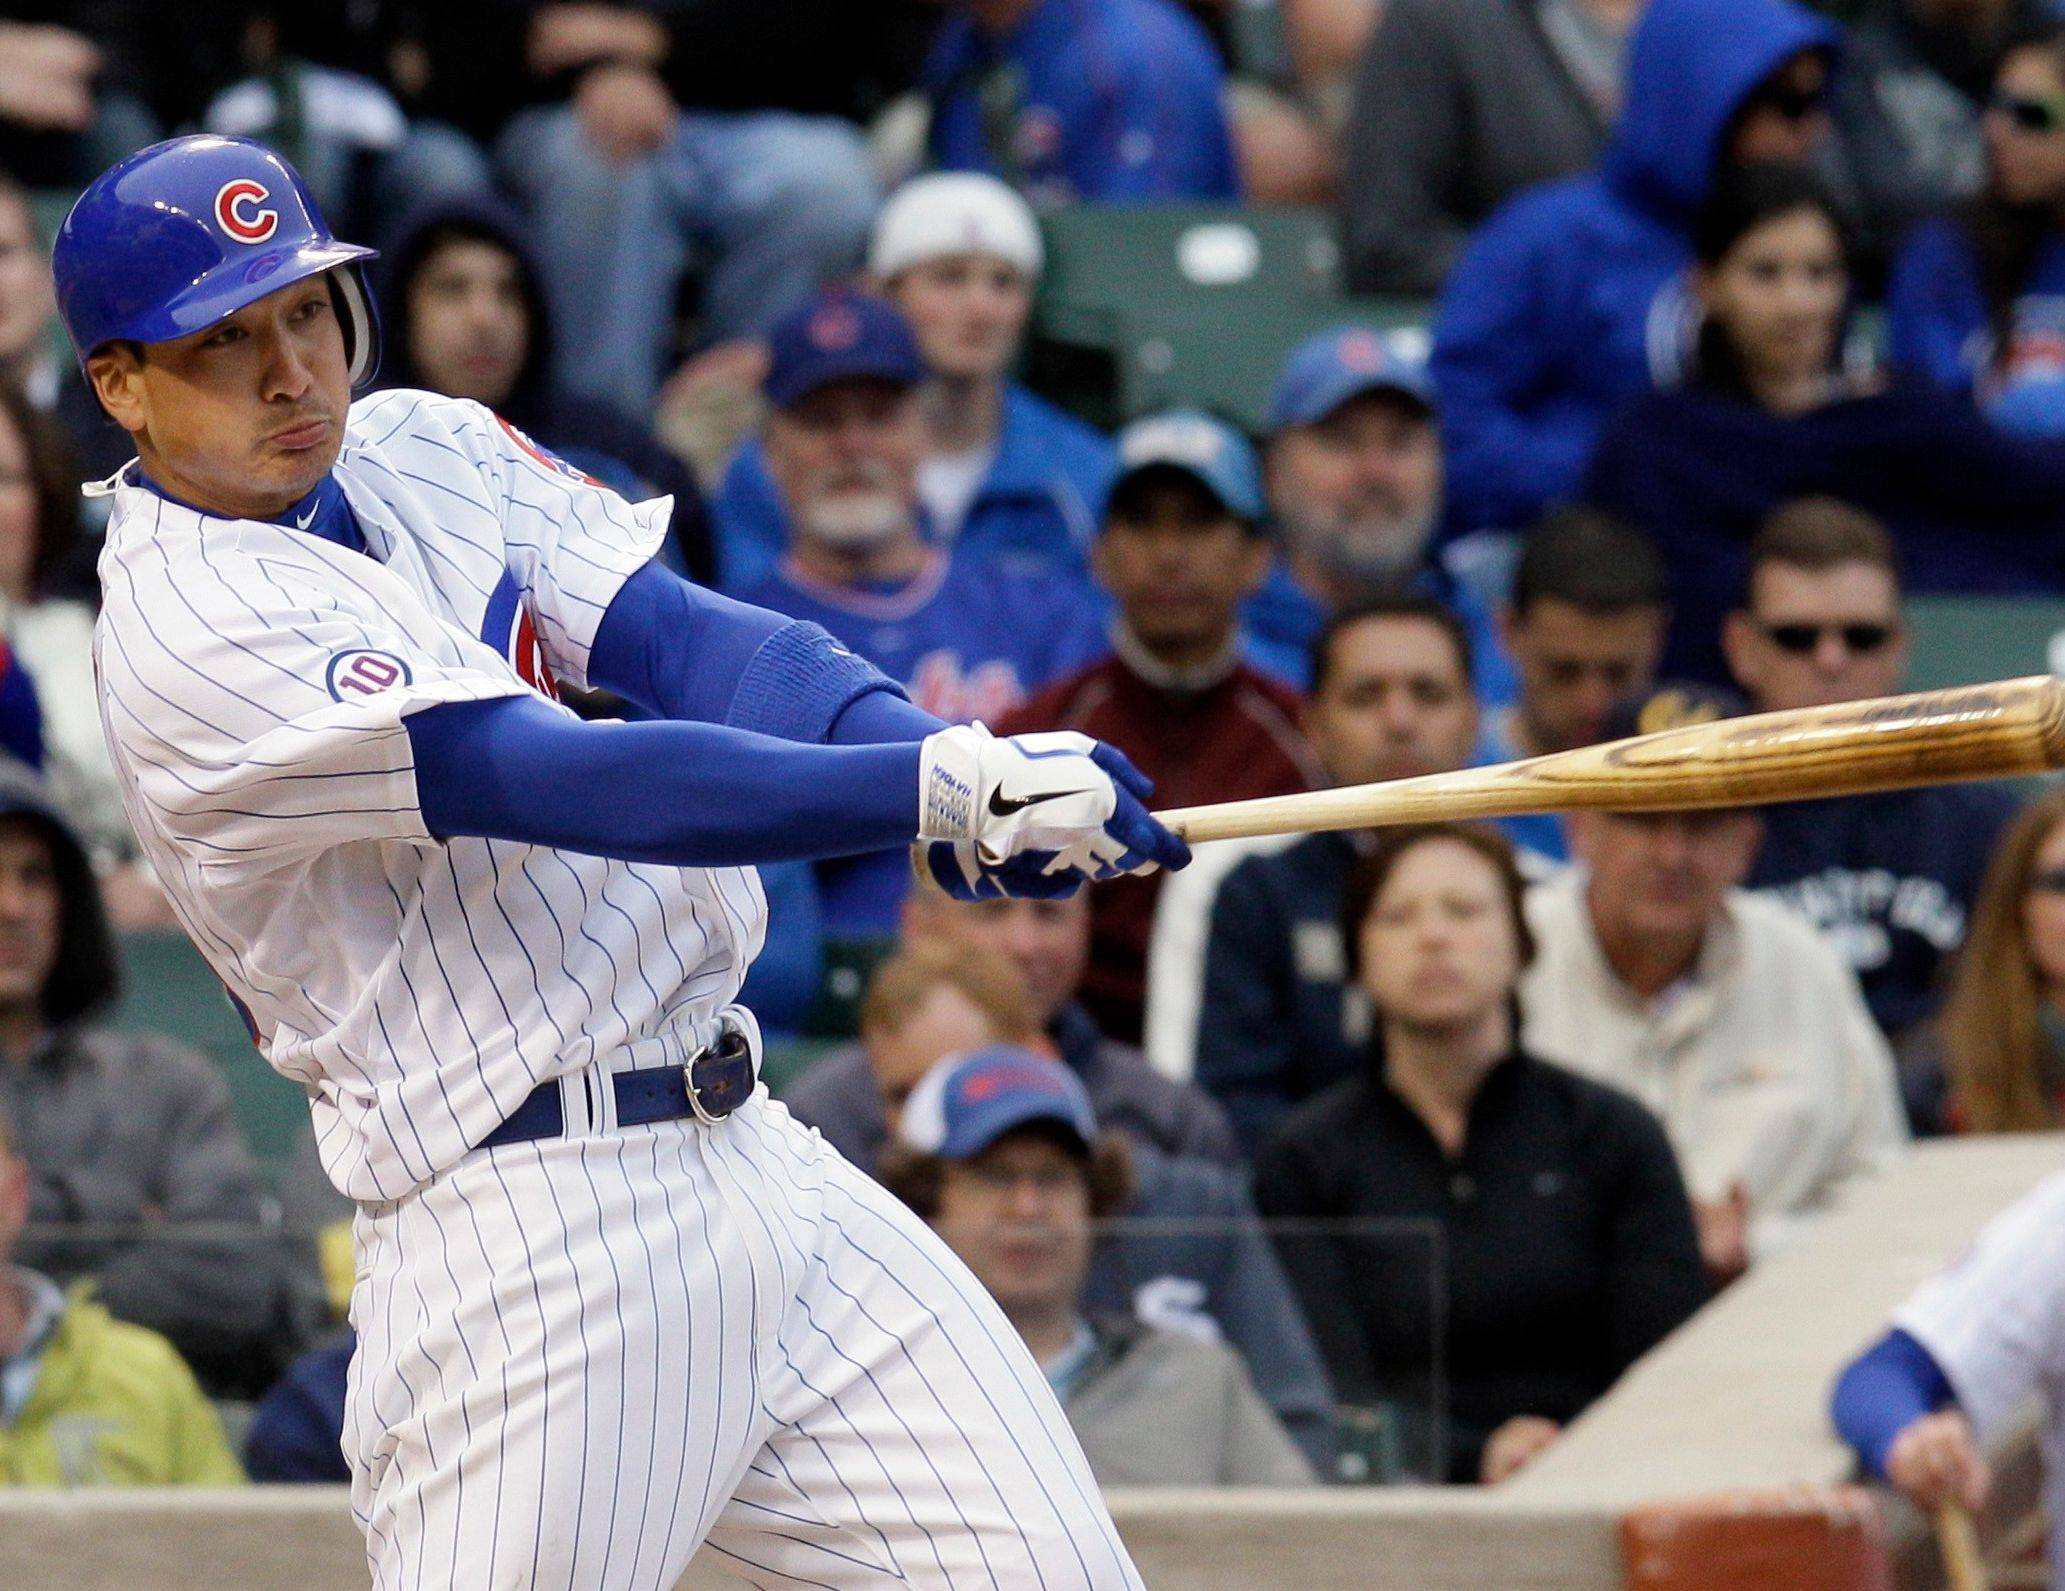 Cubs activate Barney; release Davis